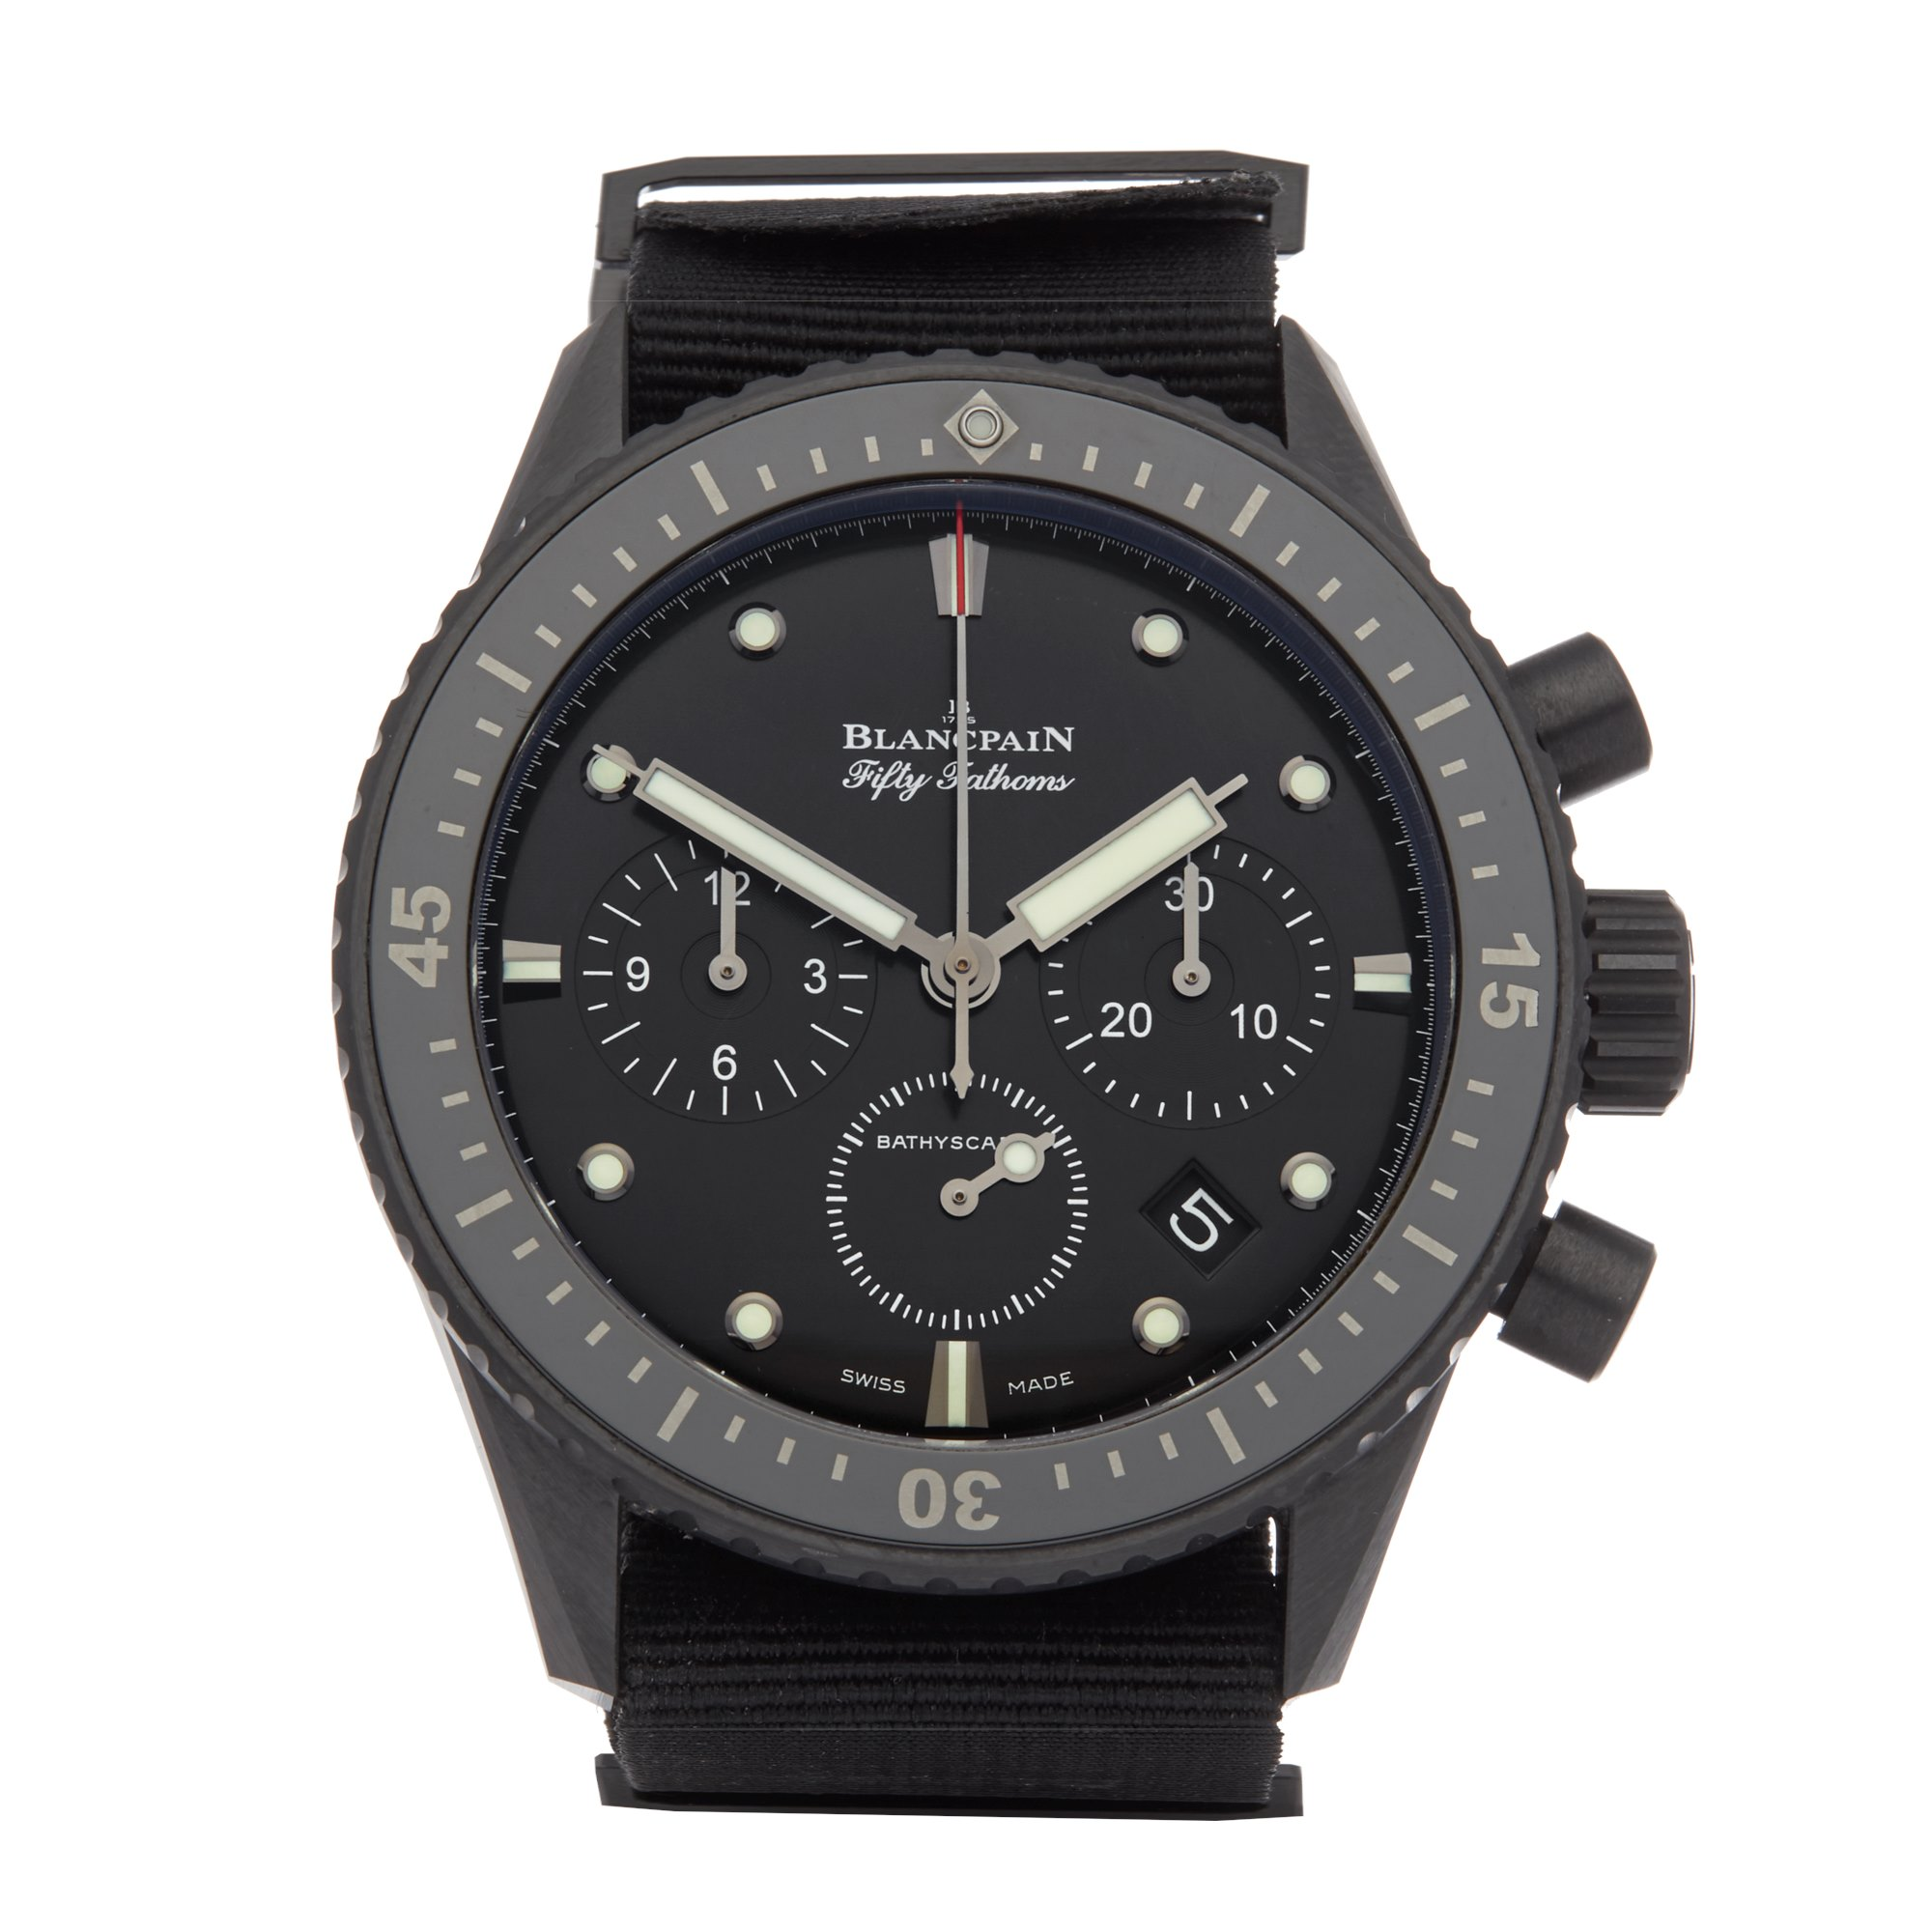 Blancpain Fifty Fathoms Bathyscaphe Flyback Chronograph Ceramic 5200-0130-B52A